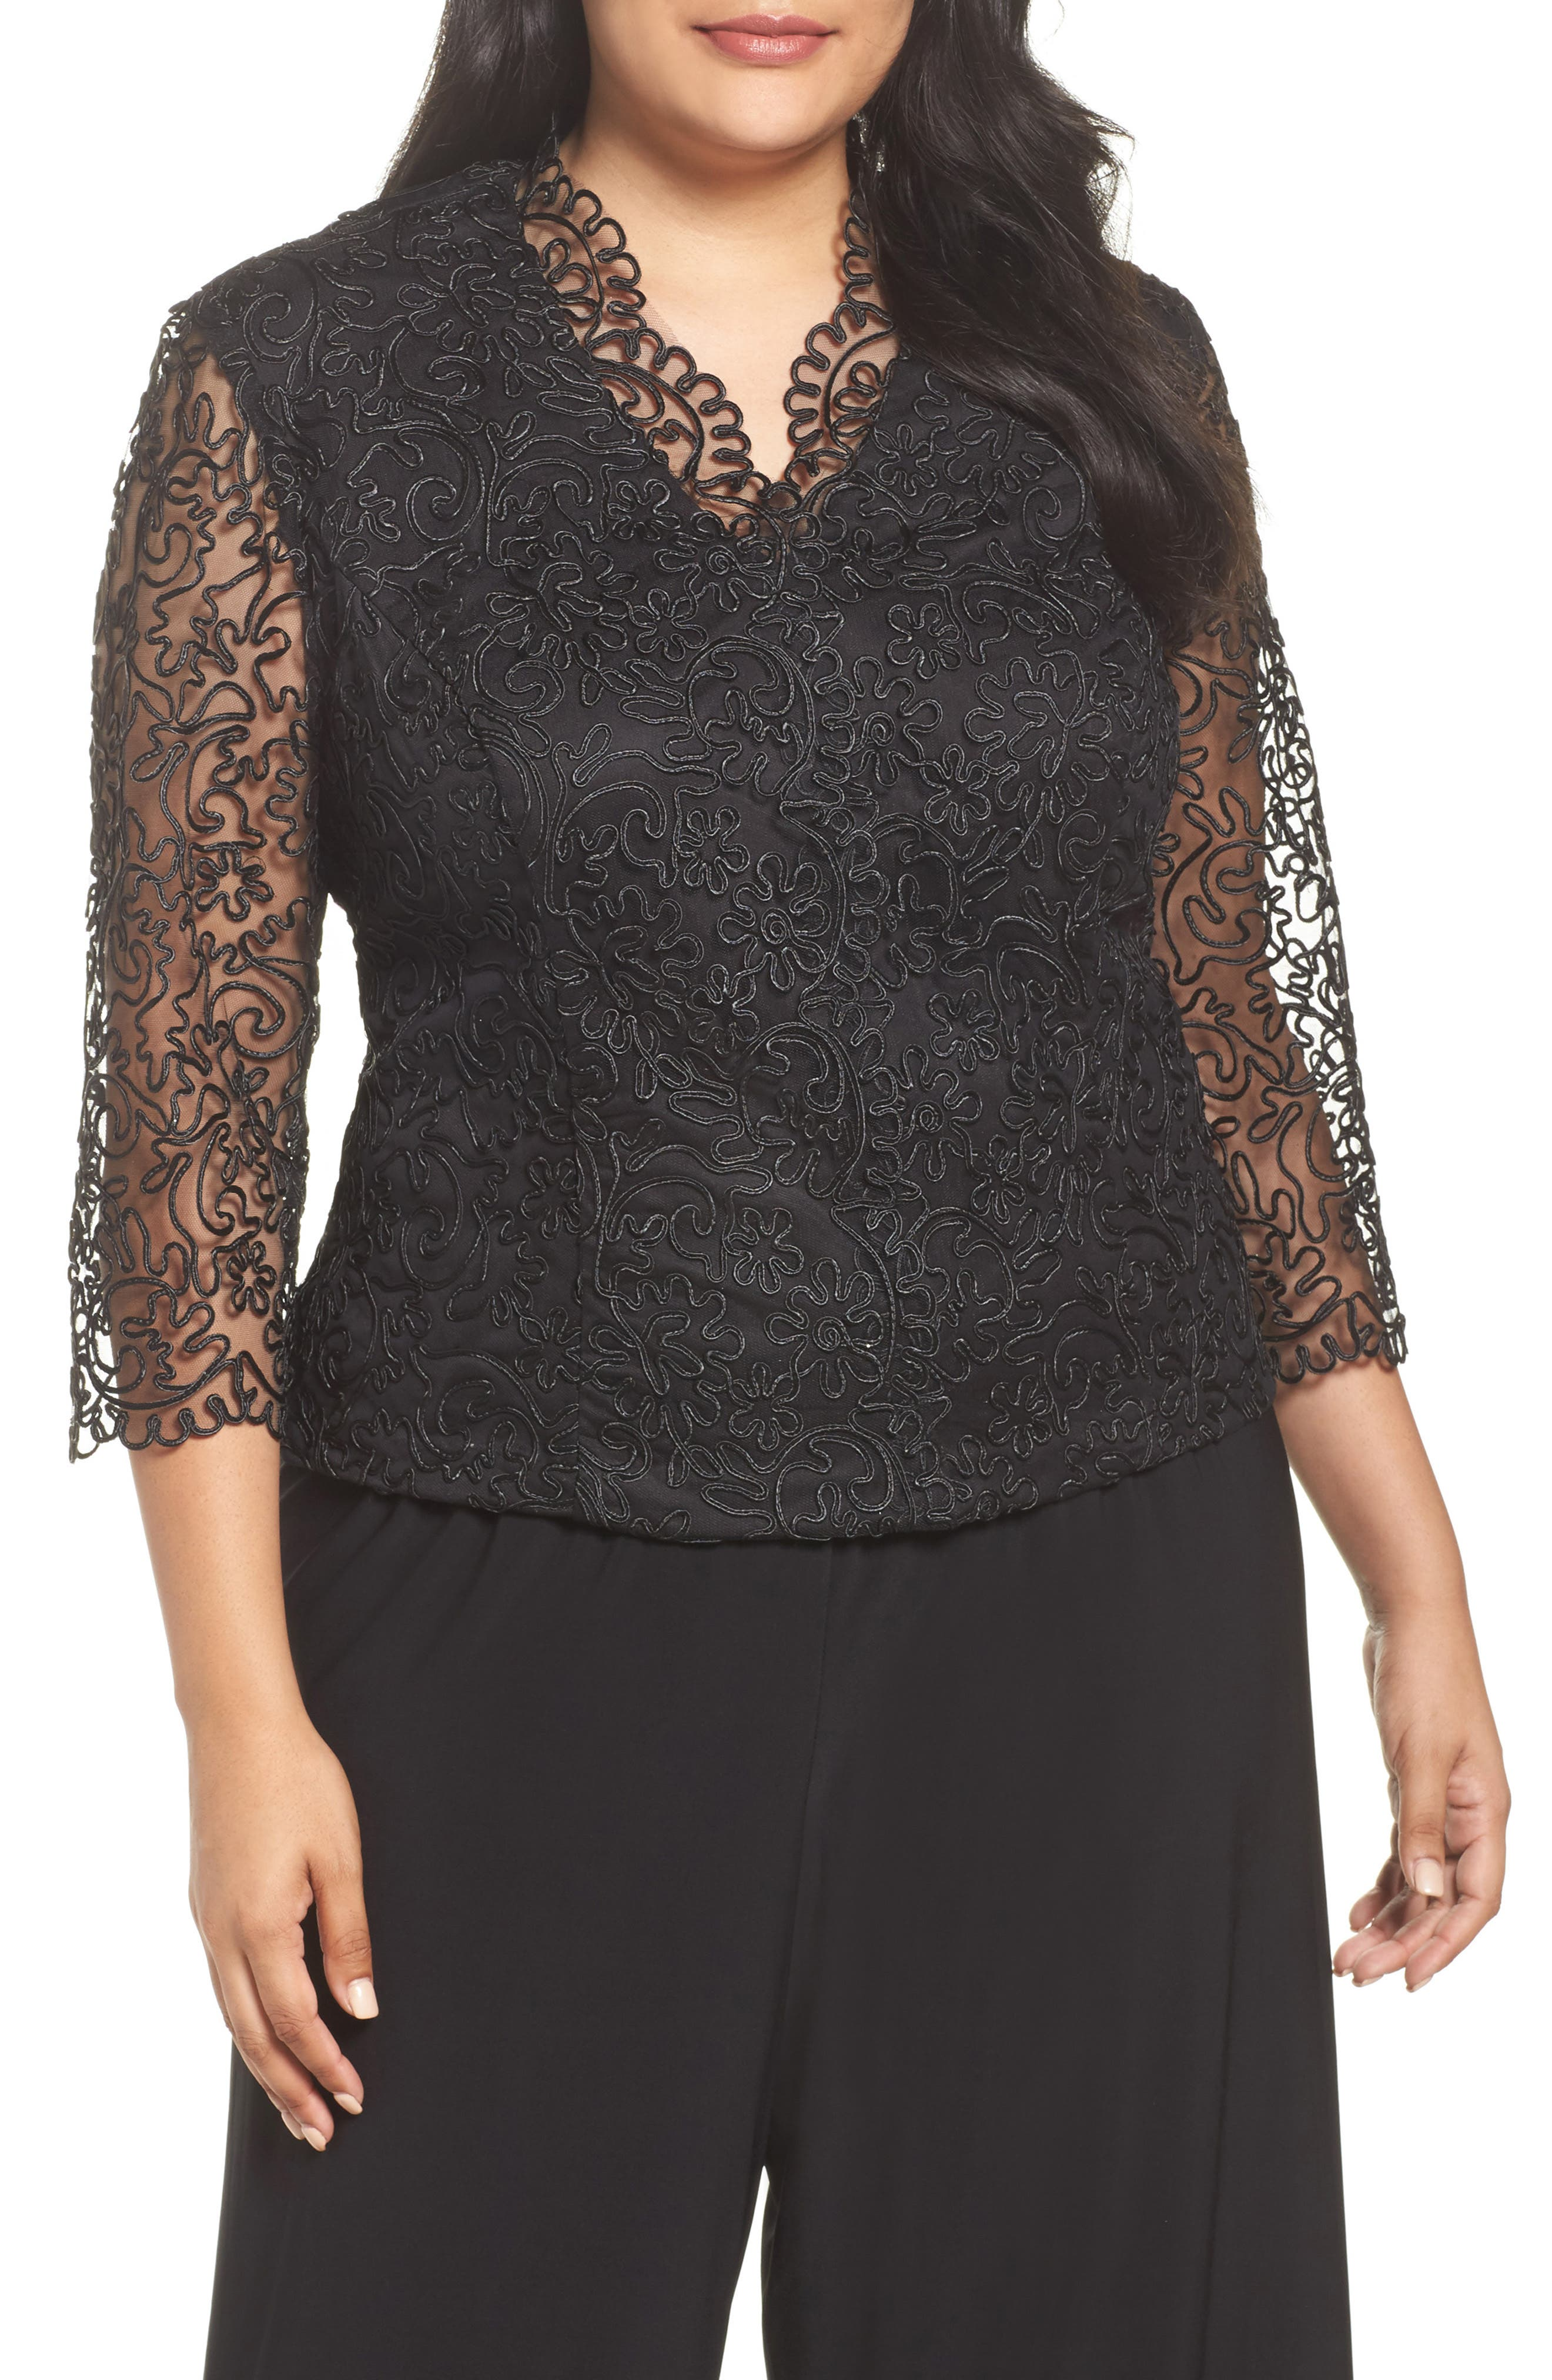 Alternate Image 1 Selected - Alex Evenings Embroidered Illusion Sleeve Blouse (Plus Size)